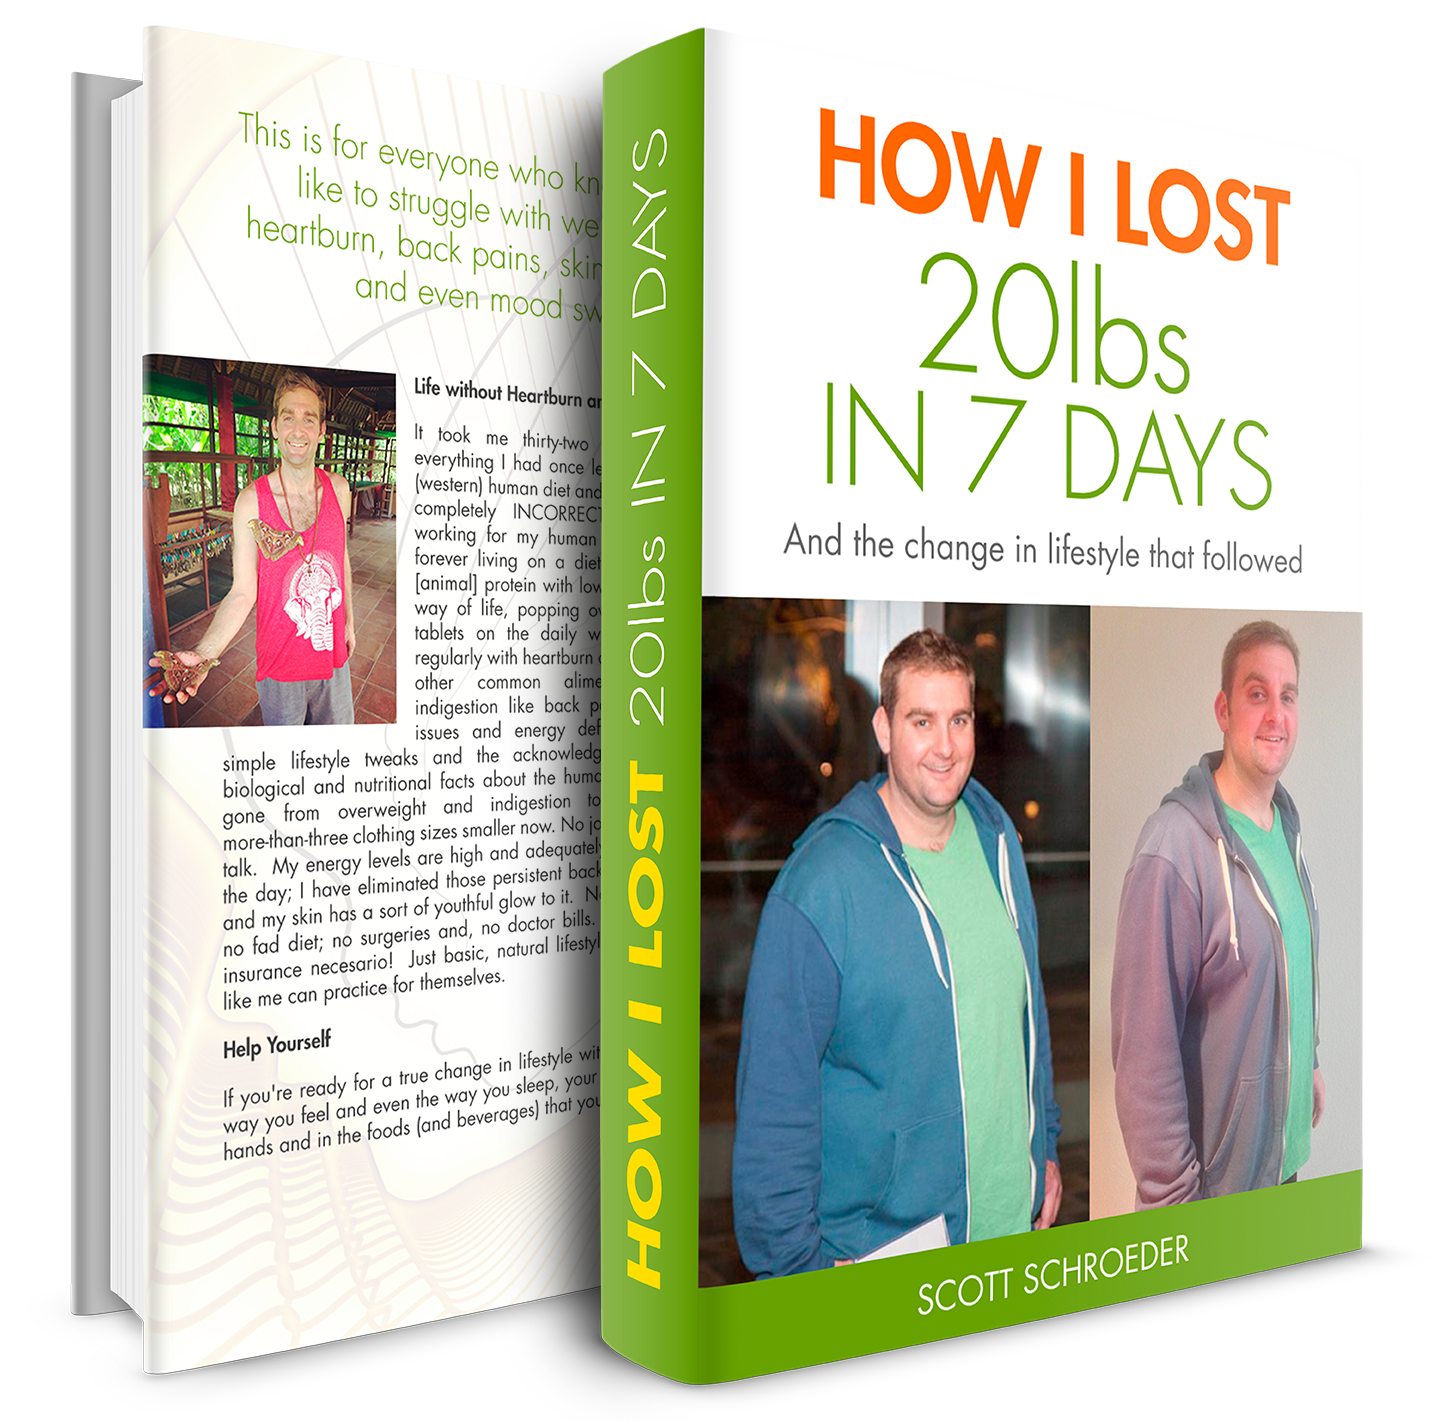 My weight loss story →